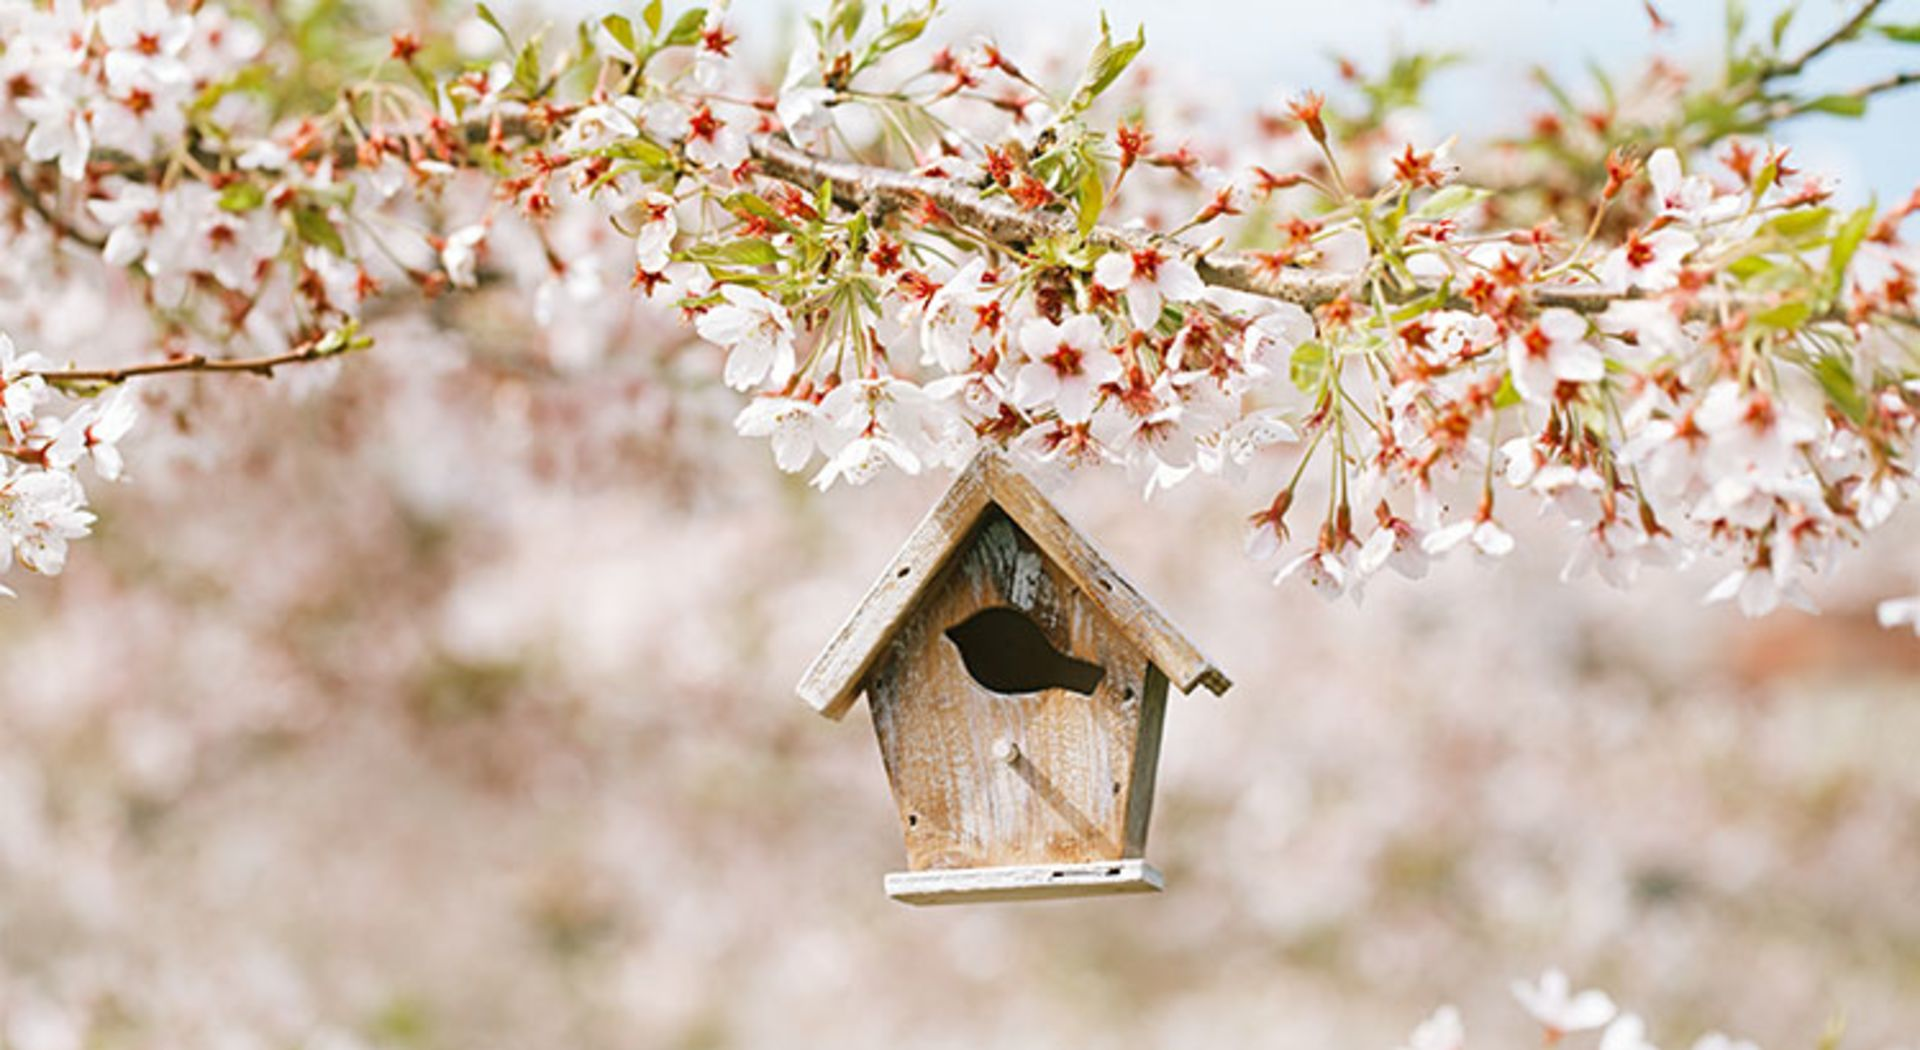 Listing your home in April is ideal